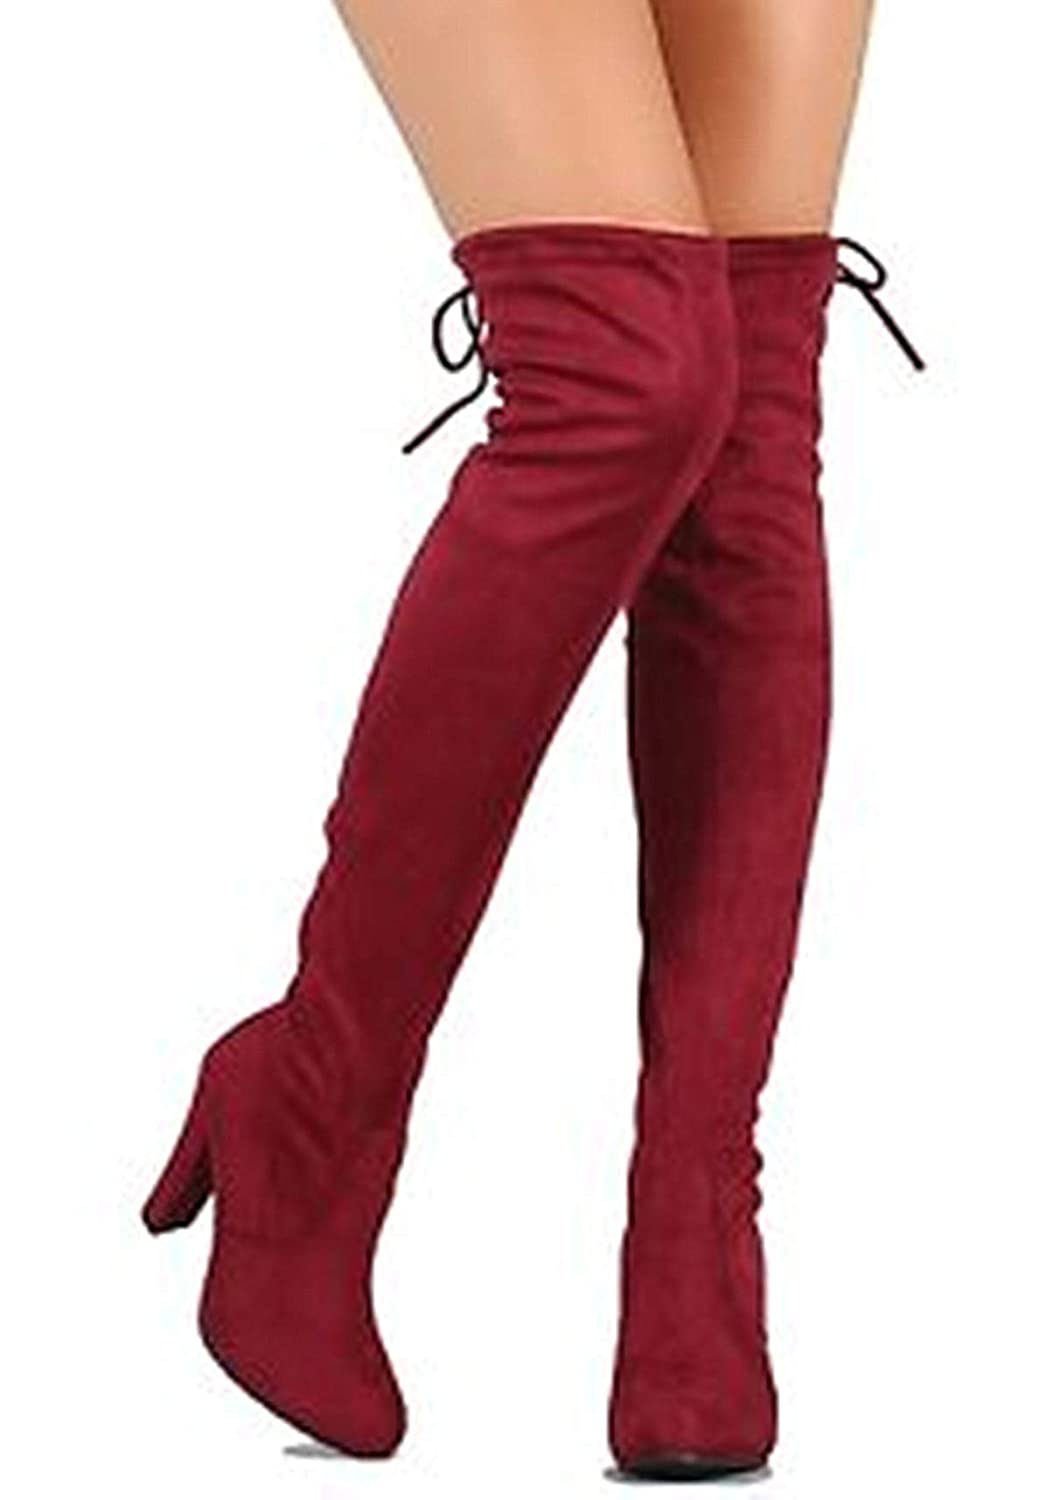 Wine-h1 S&F SF Women's Over The Knee Boots Chunky Heels String Riding Women's shoes